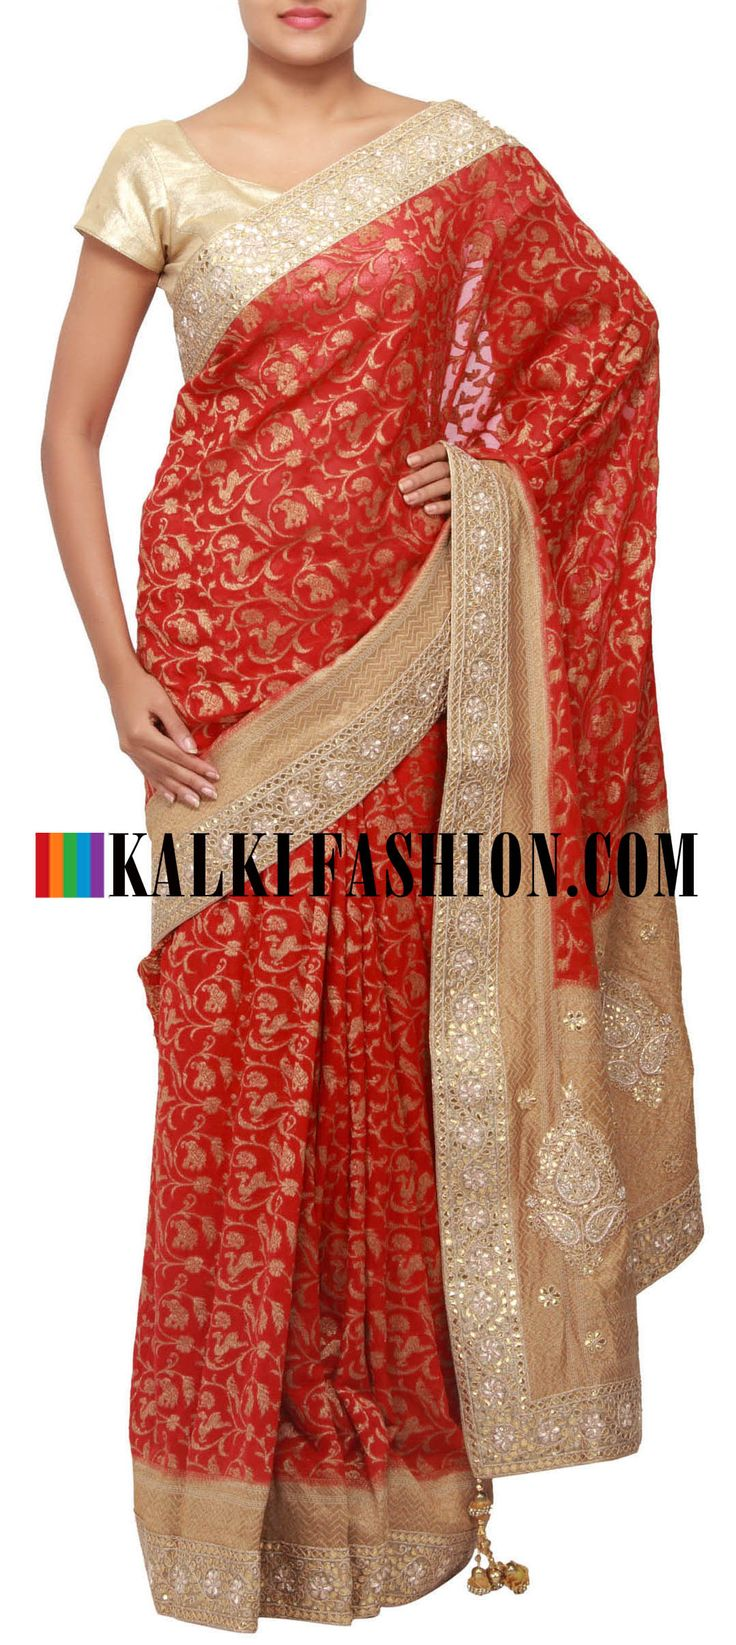 Get this beautiful saree here: http://www.kalkifashion.com/red-saree-enhanced-in-gotta-patti-cut-work-border-only-on-kalki.html Free shipping worldwide.